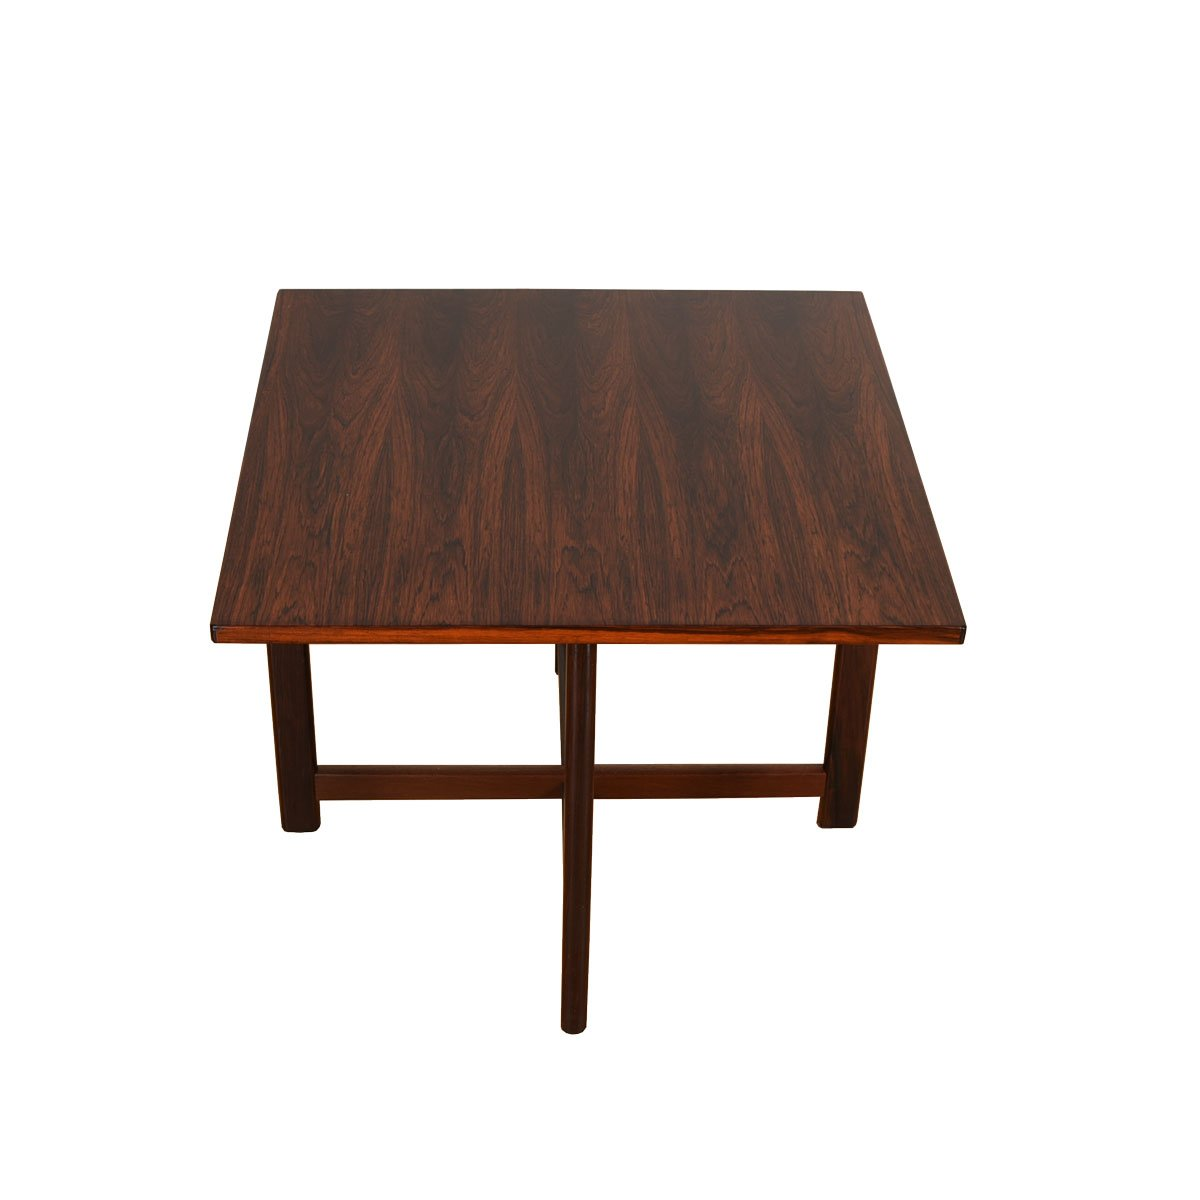 Danish Rosewood Square Accent Table – Also Available in Teak!